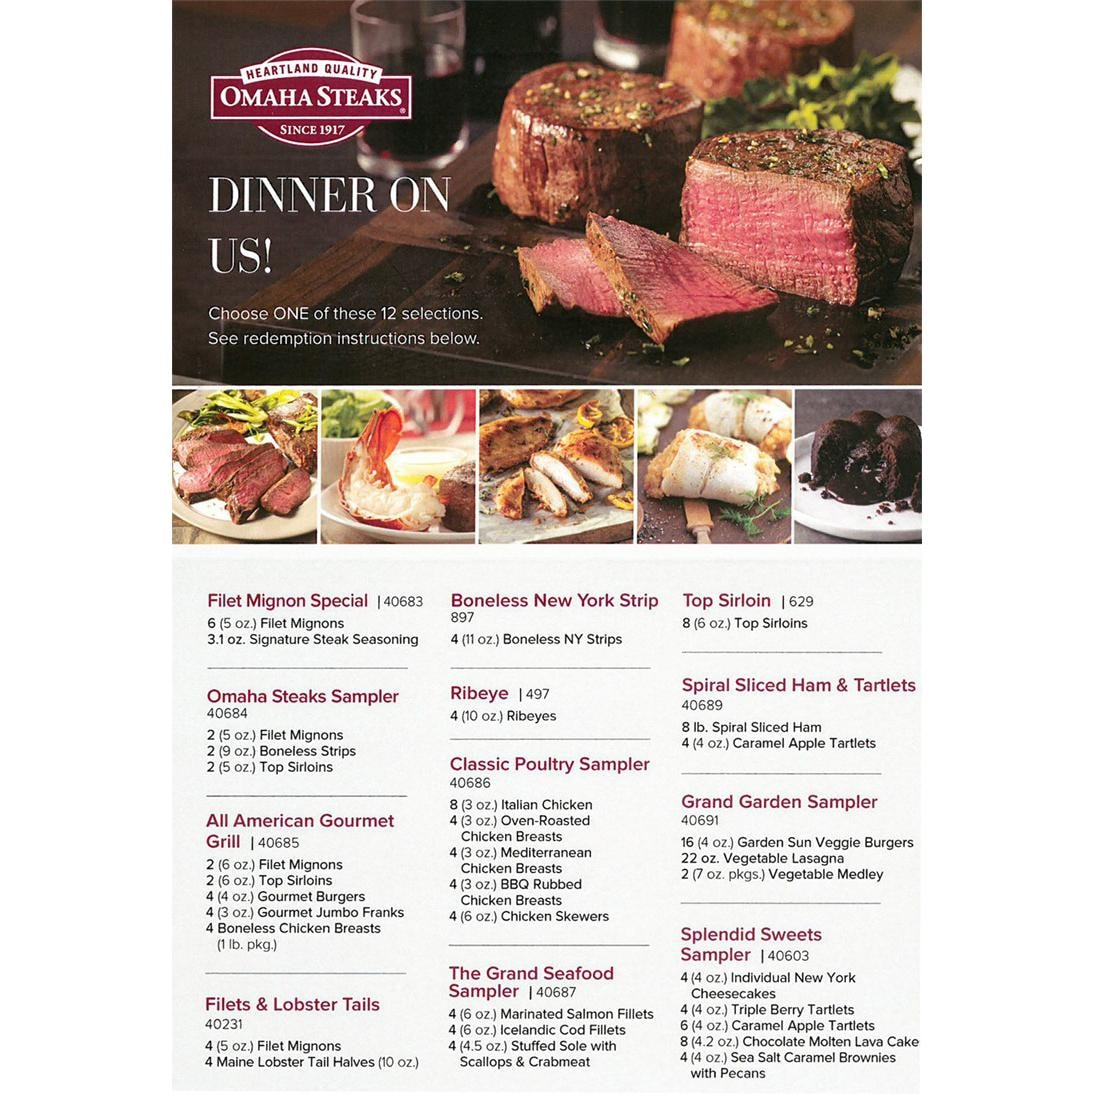 Free Omaha Steaks Dinner On Us Collection Gift Certificate From Evo